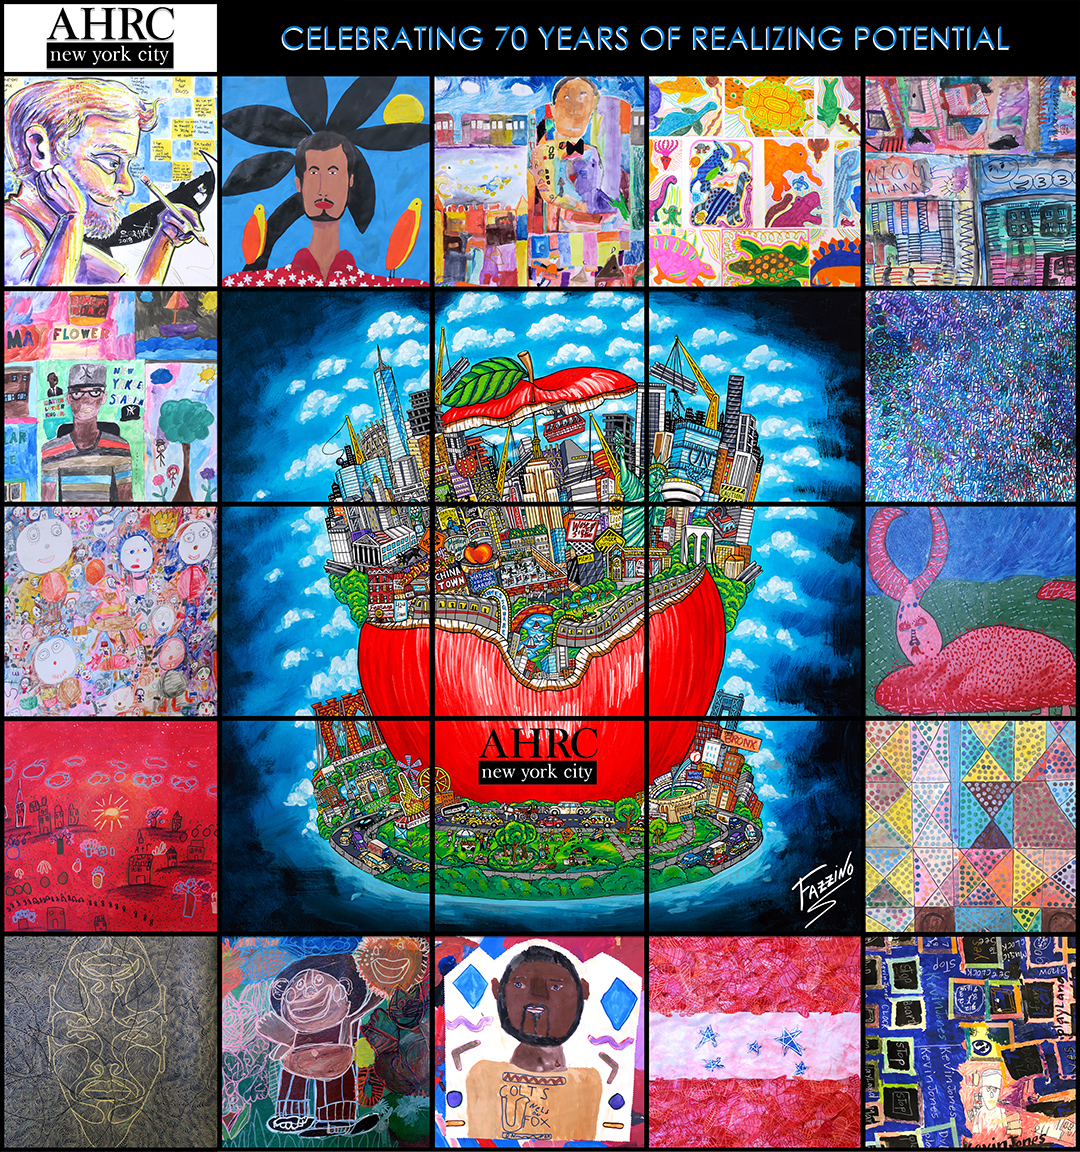 Grid-like collage featuring art works of young artists from AHRC with Charles Fazzino red apple in the center